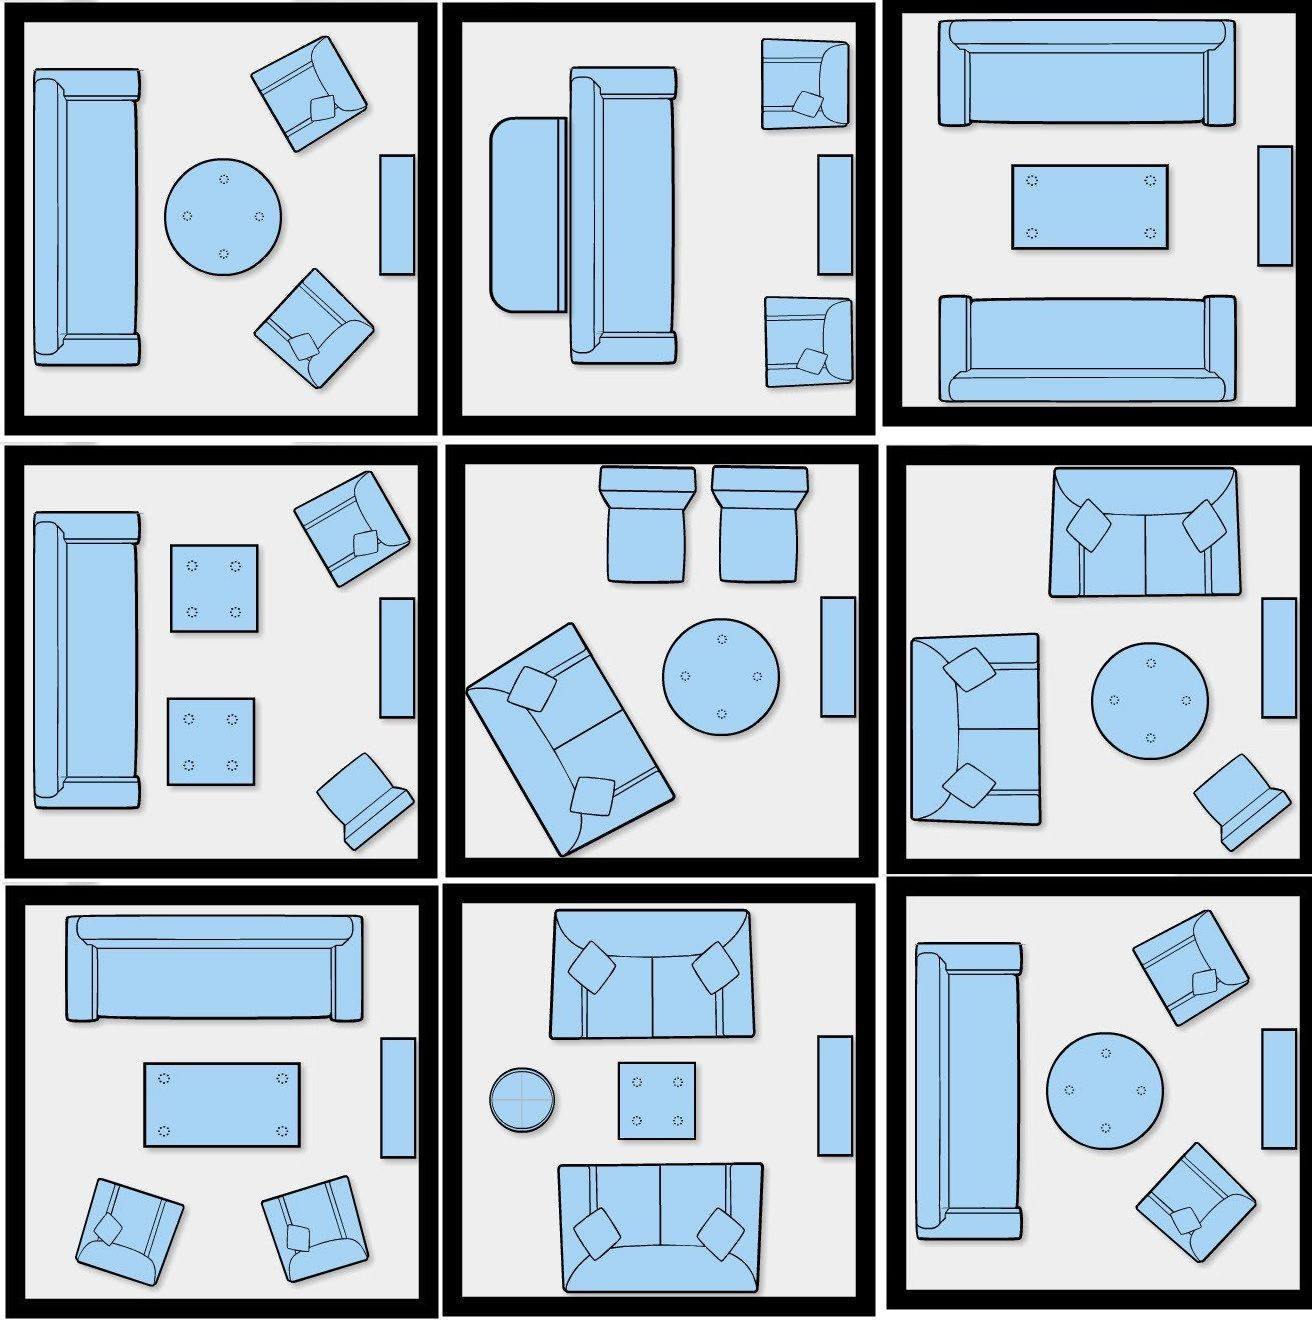 Studio Apartment Furniture Layout How To Efficiently Arrange The Furniture In A Small Living